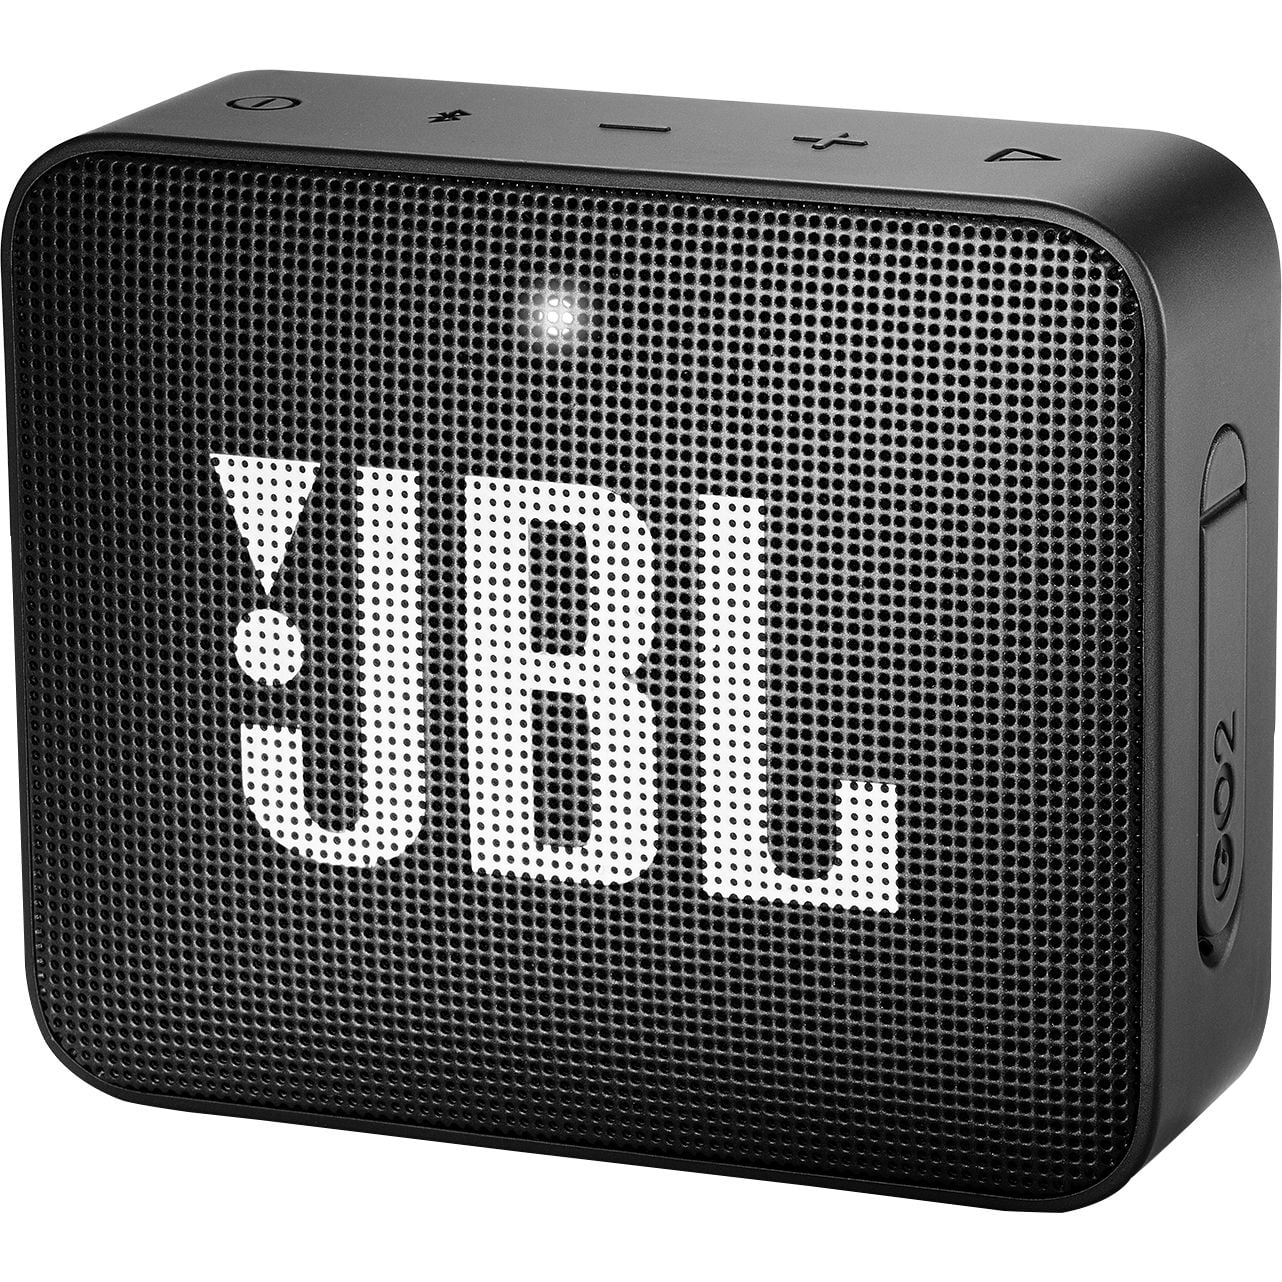 Boxa portabila JBL Go 2, Wireless, Bluetooth, IPX7 Waterproof, Black